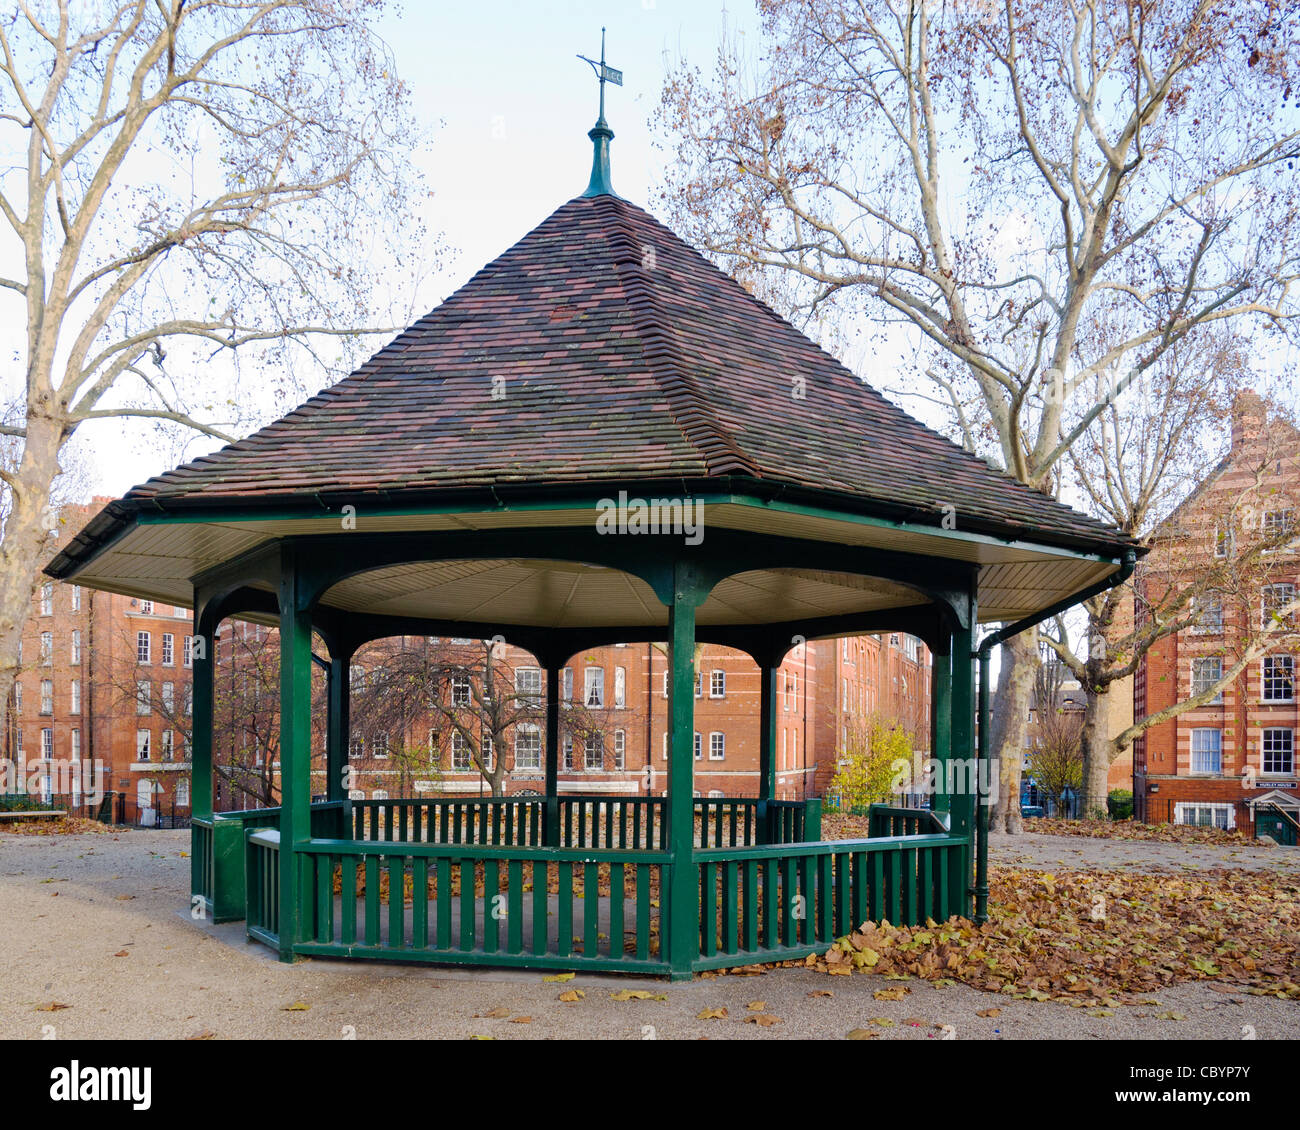 La limite Estate kiosque (1899) sur le haut de la butte centrale à Arnold Circus, Bethnal Green, Tower Hamlets, Photo Stock